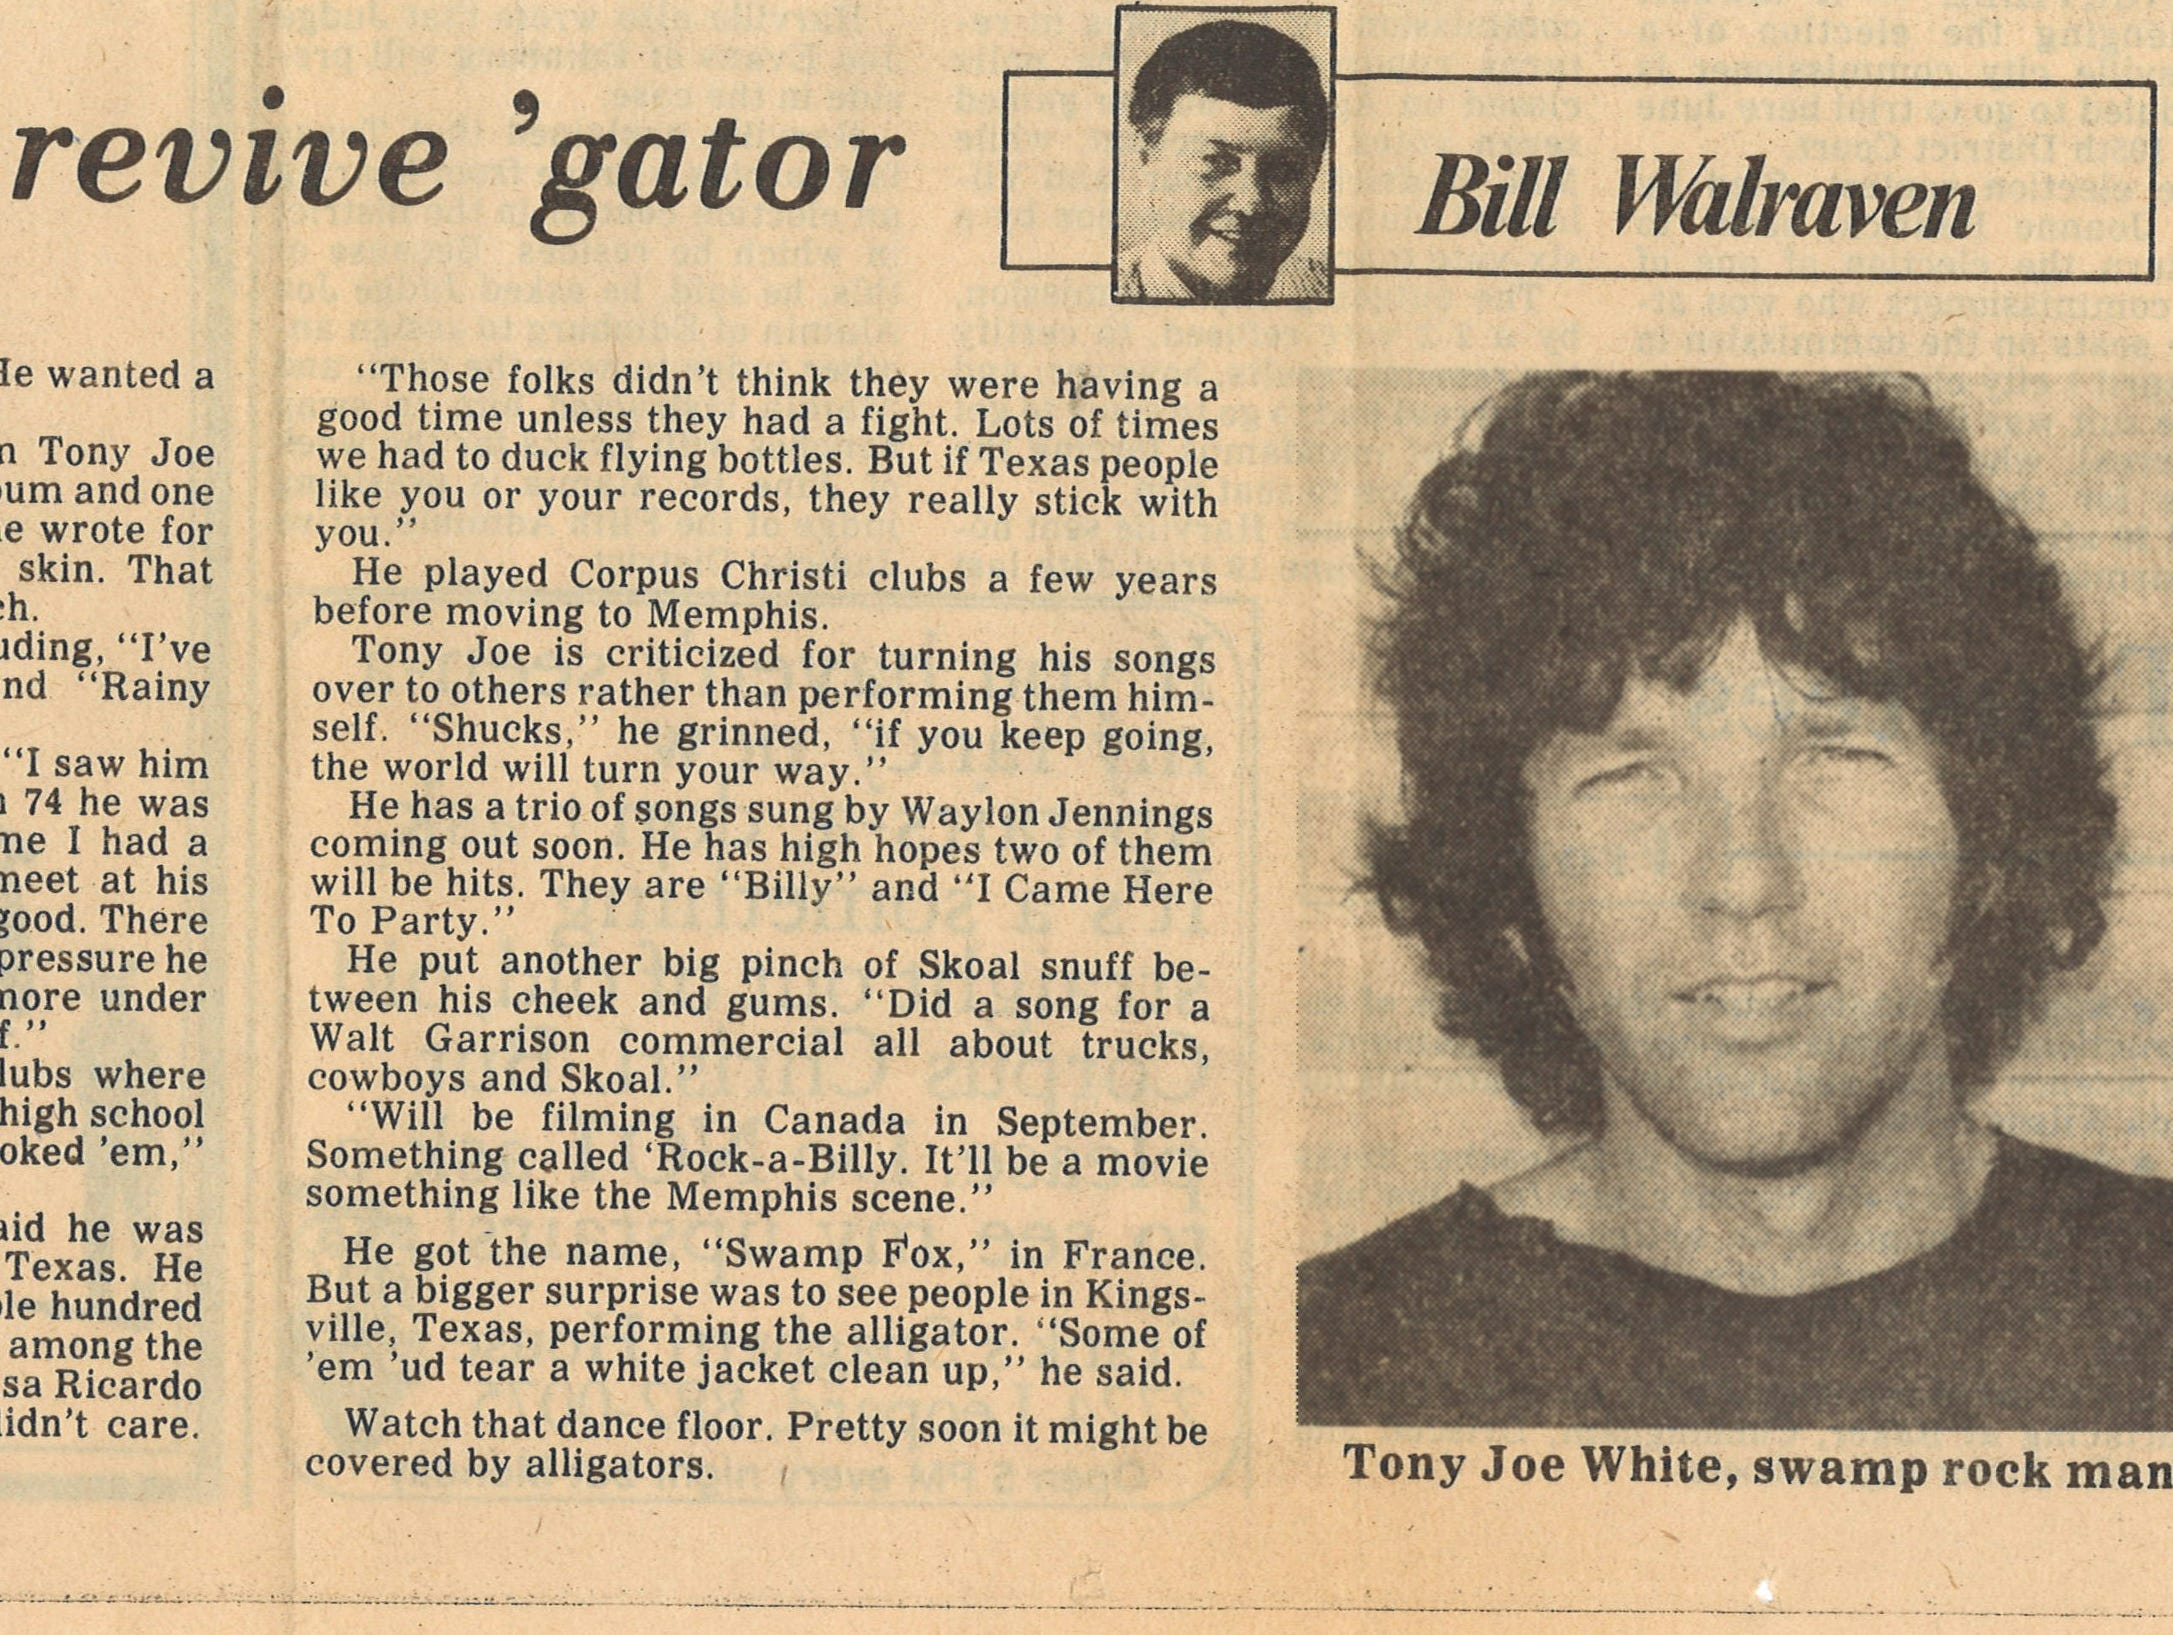 Article on Tony Joe White by Caller-Times columnist Bill Walraven from June 6, 1979.